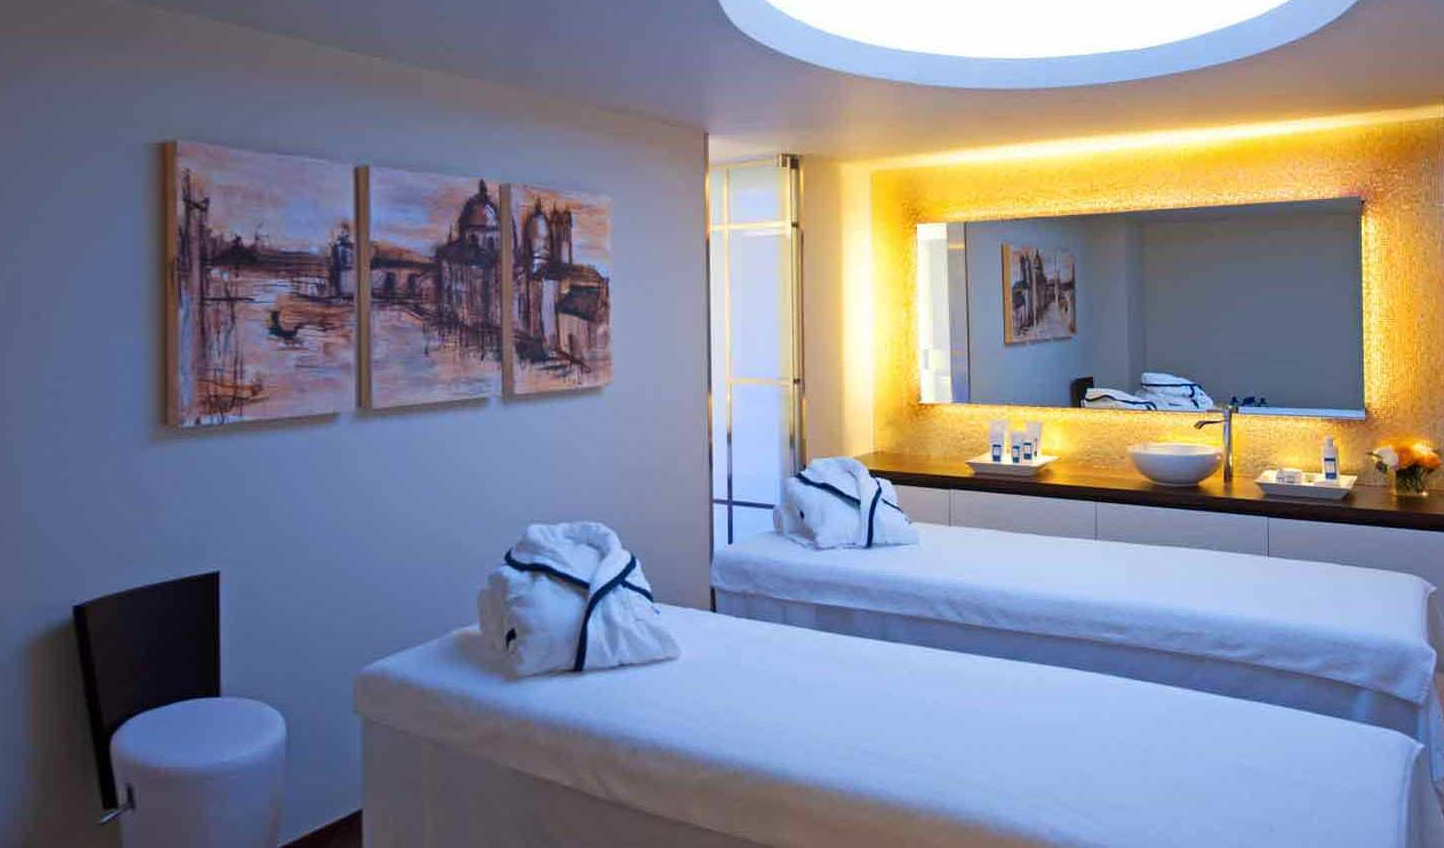 What could be better than a massage after a long day exploring the city?